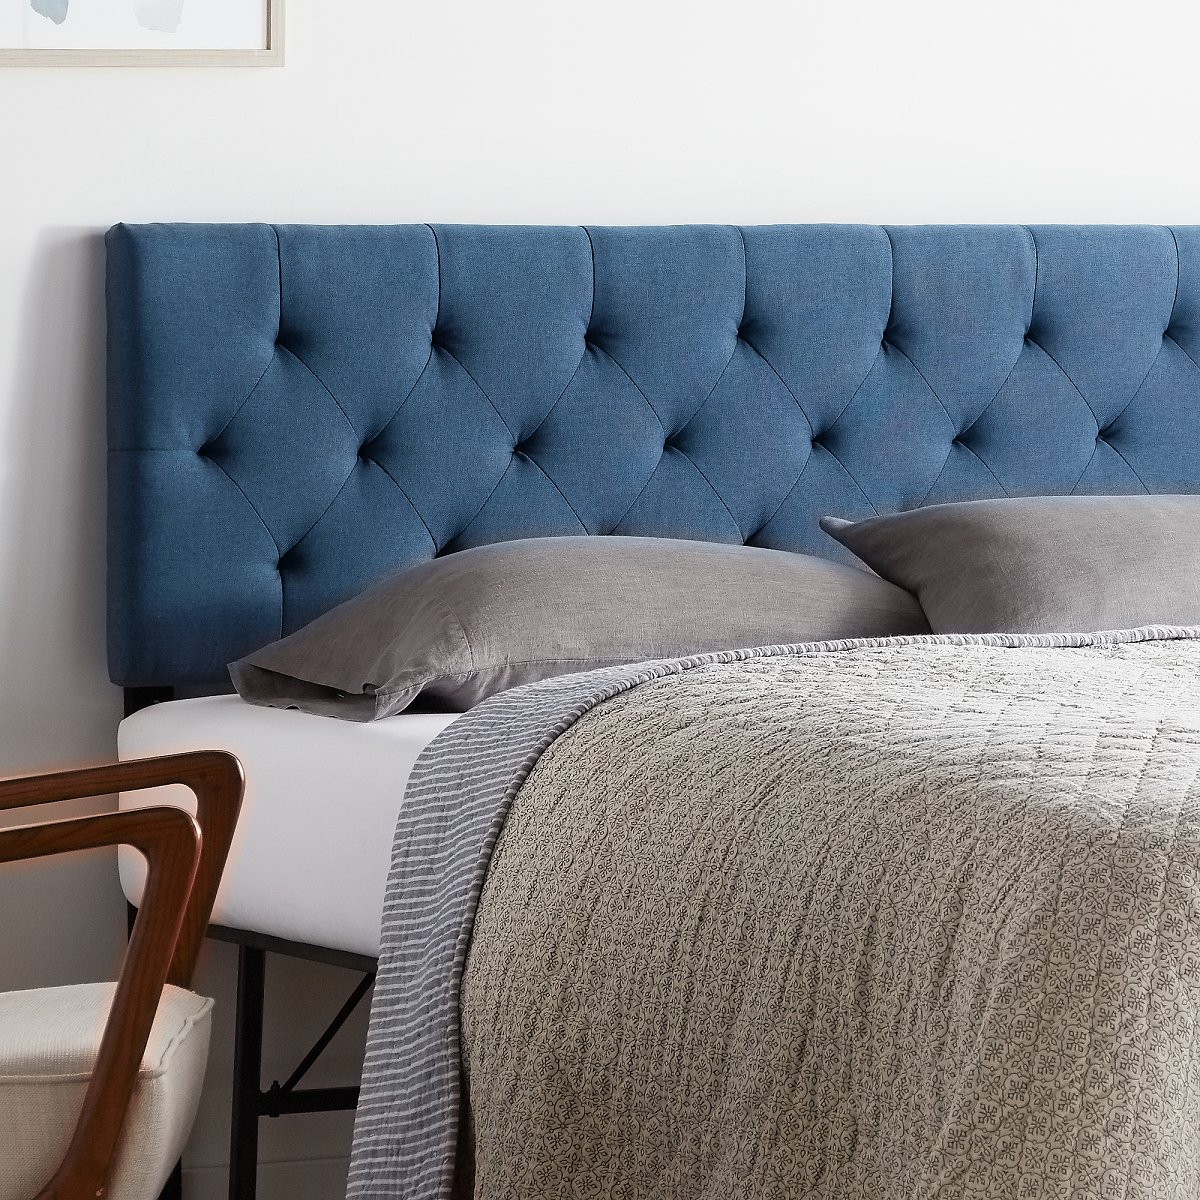 Rest Haven Low Profile Diamond Tufted Upholstered Headboard - Twin / Twin XL - Cobalt